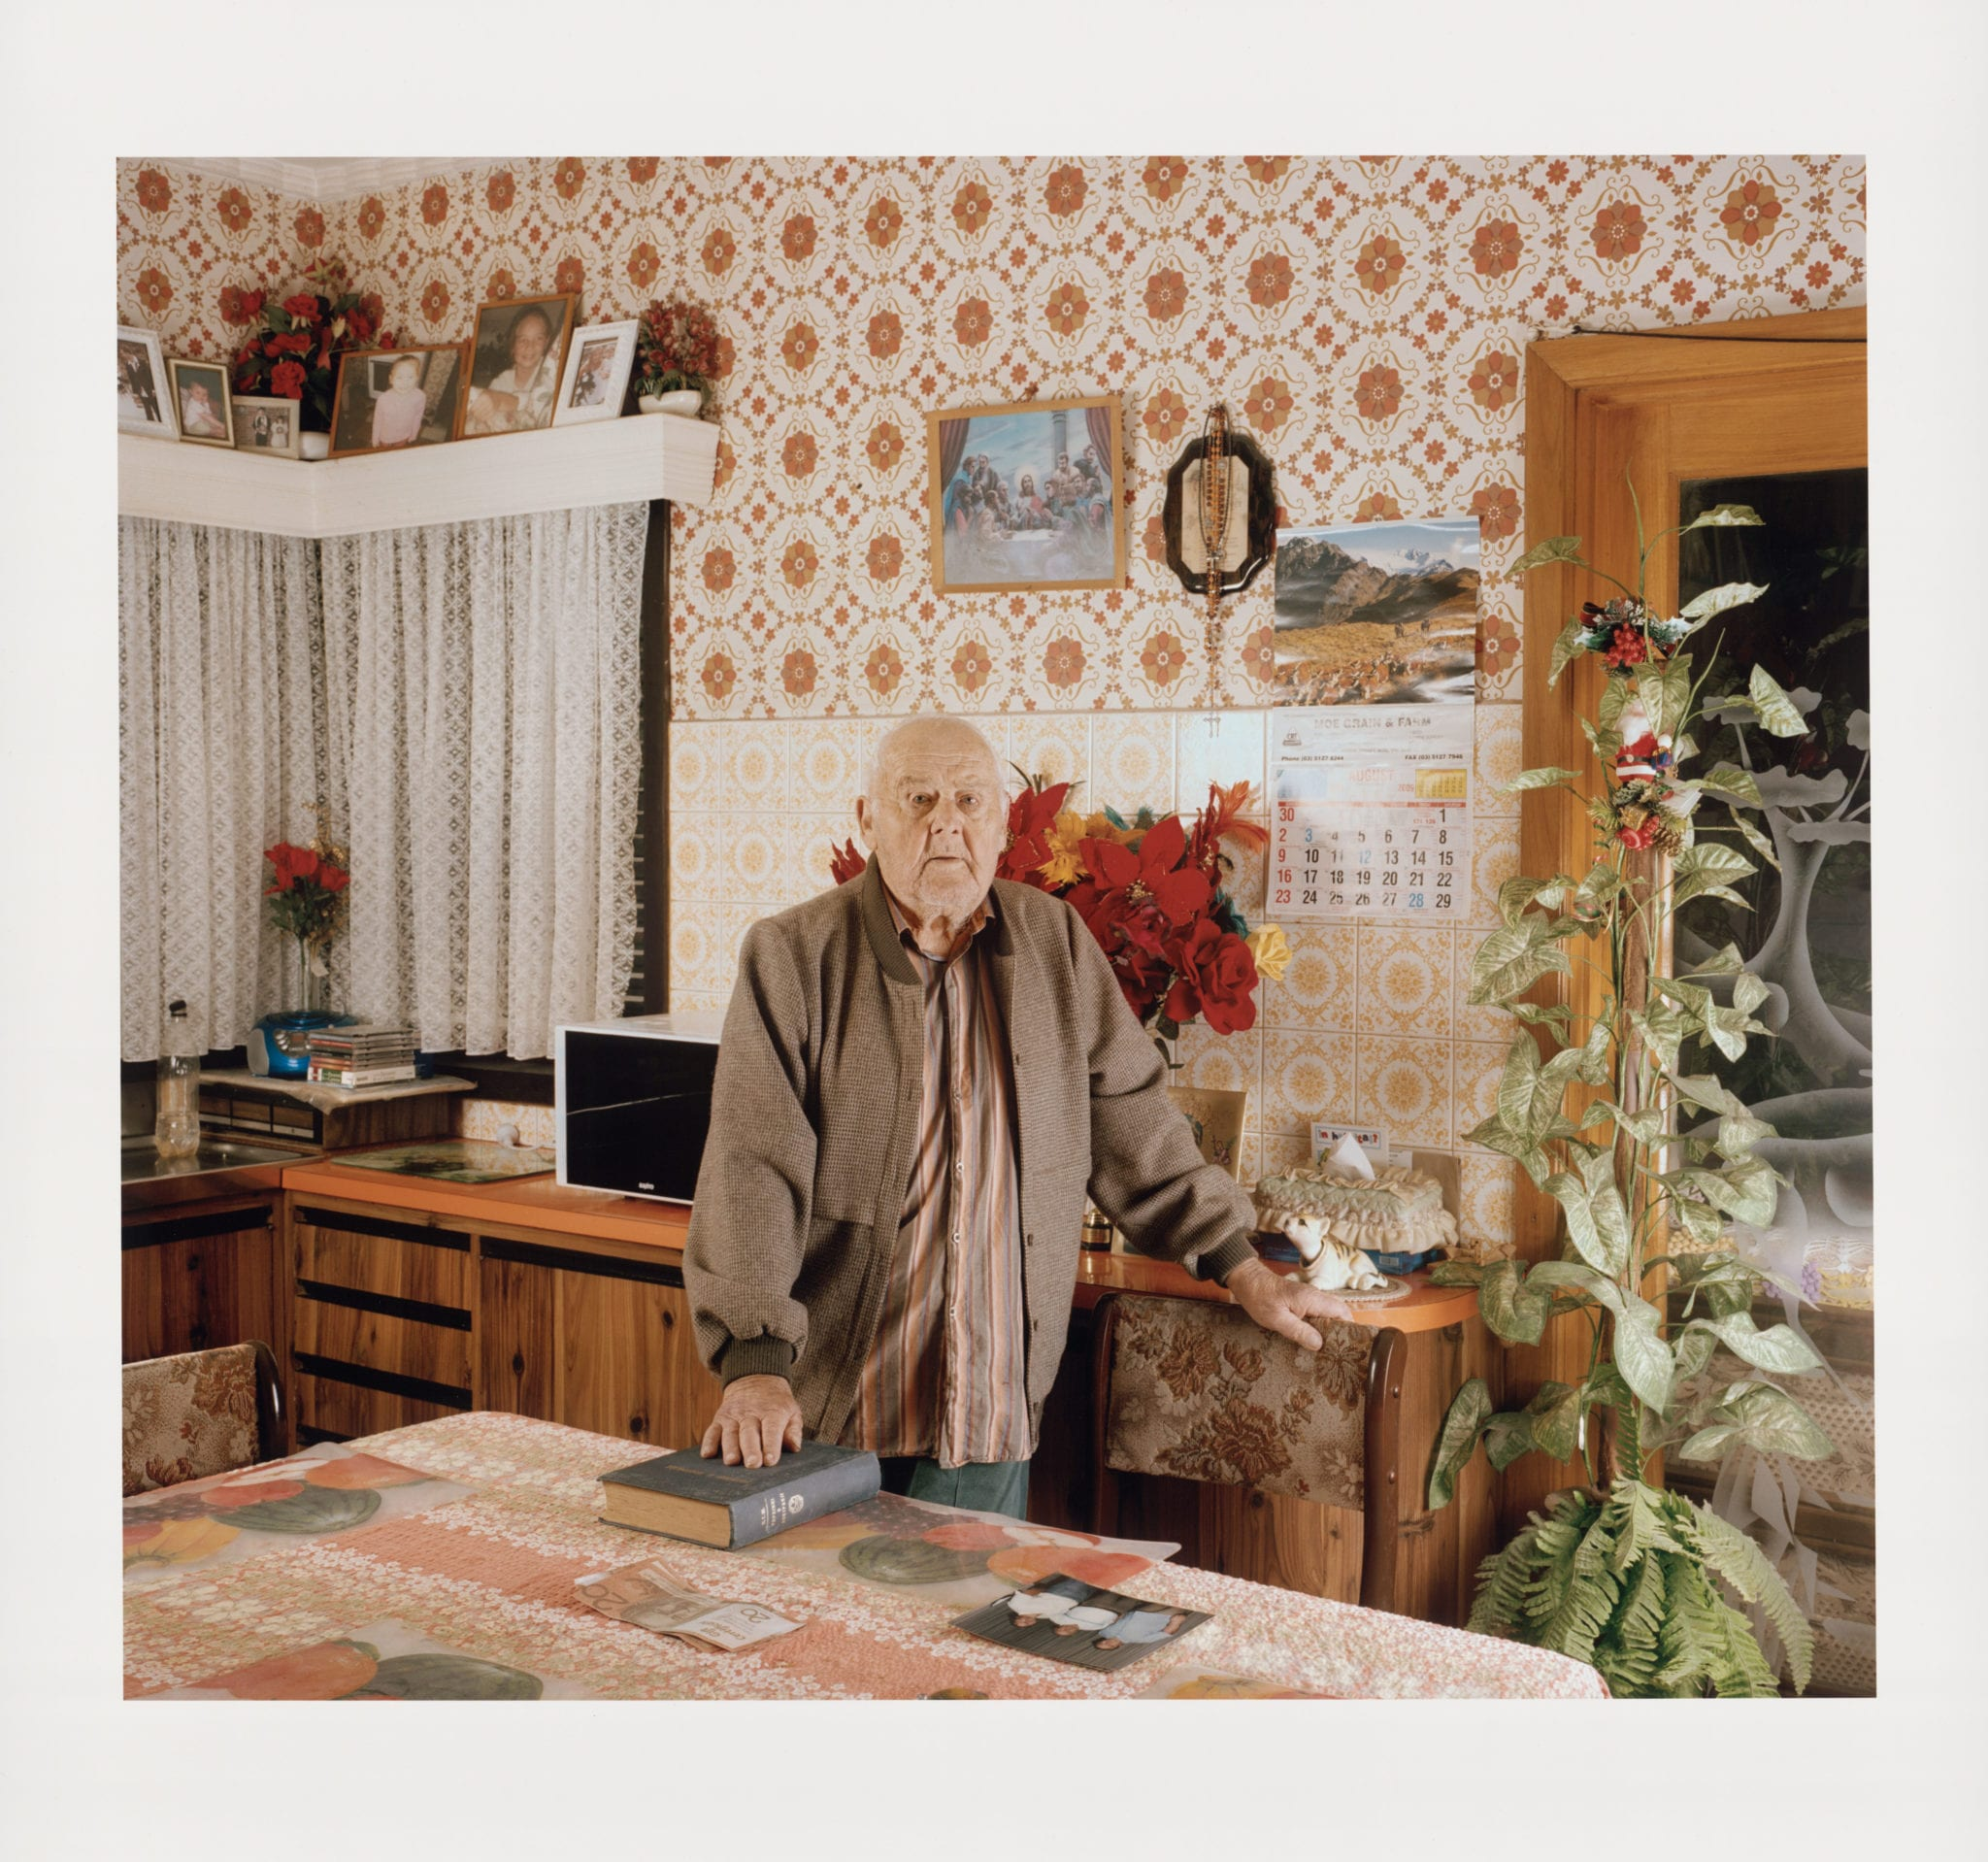 Janina Green, 'Mr. Luscher' 2009, C Type print, 55 x 64 cm, Latrobe Regional Gallery Collection